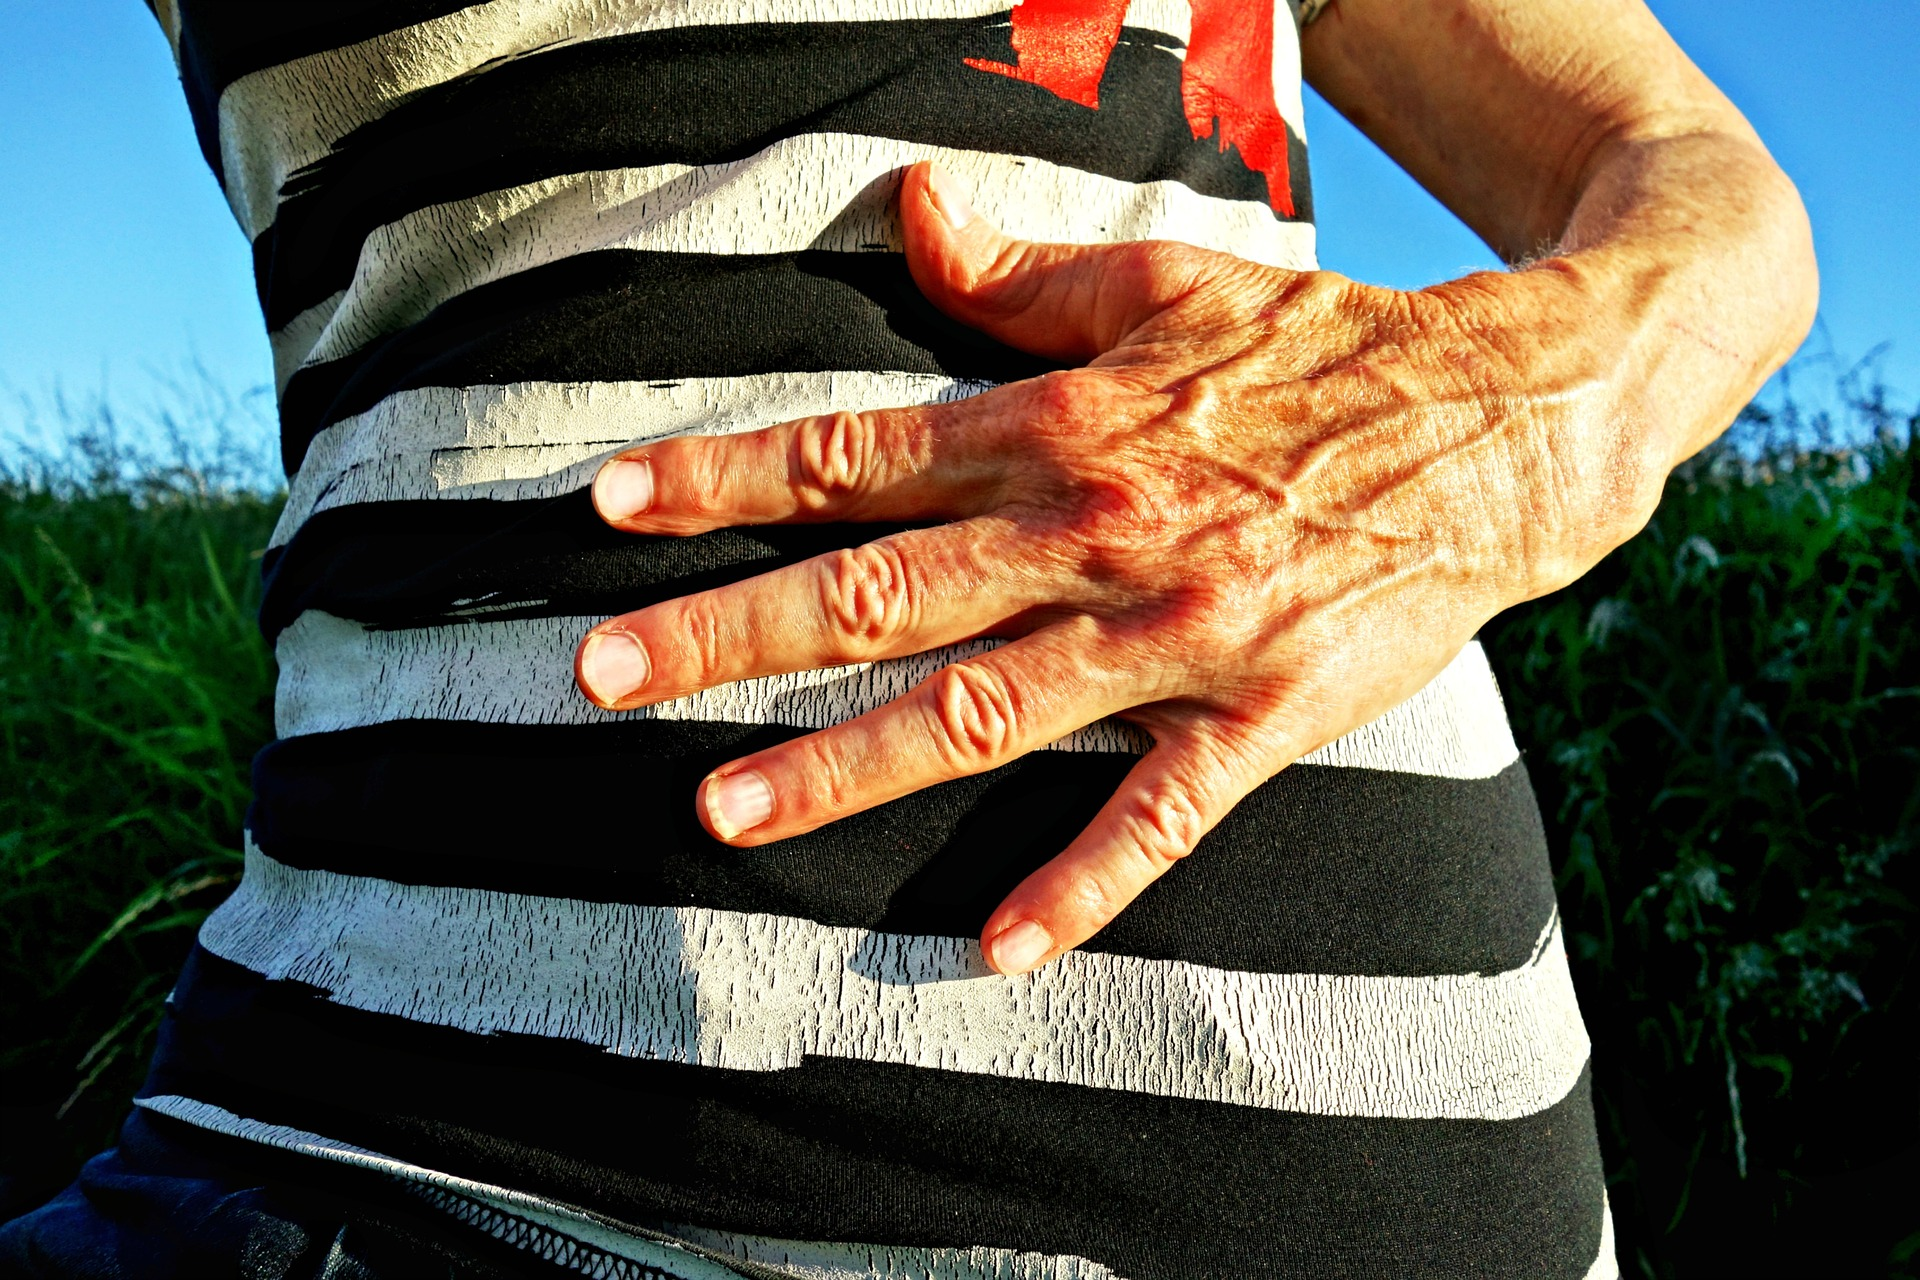 Person with hand over their stomach